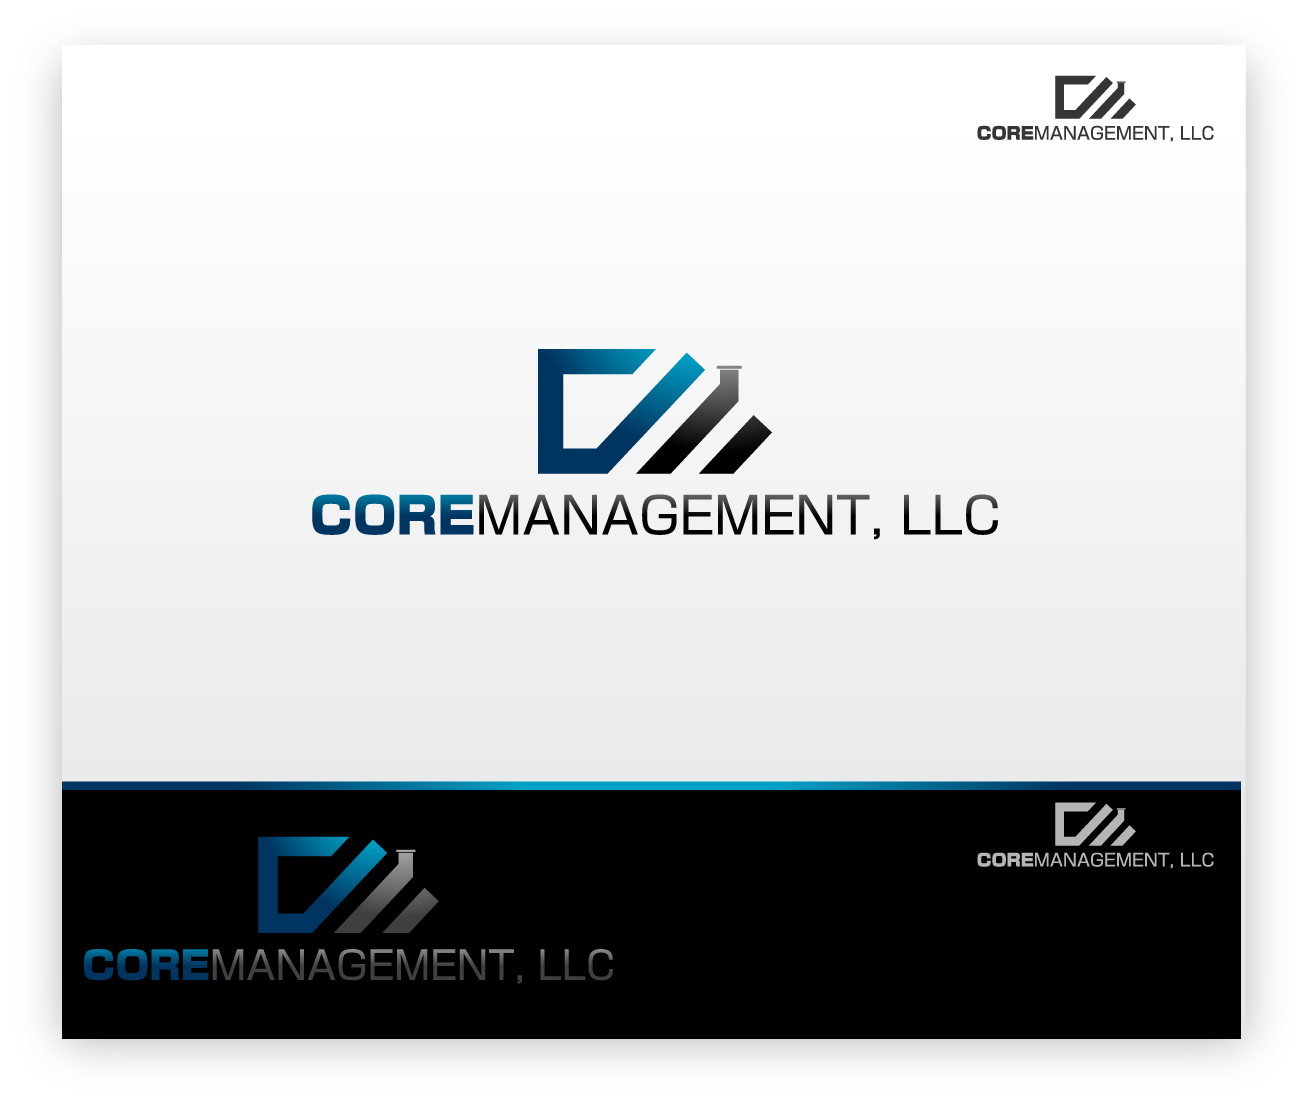 Logo Design by zoiDesign - Entry No. 5 in the Logo Design Contest Creative Logo Design for CORE Management, LLC.